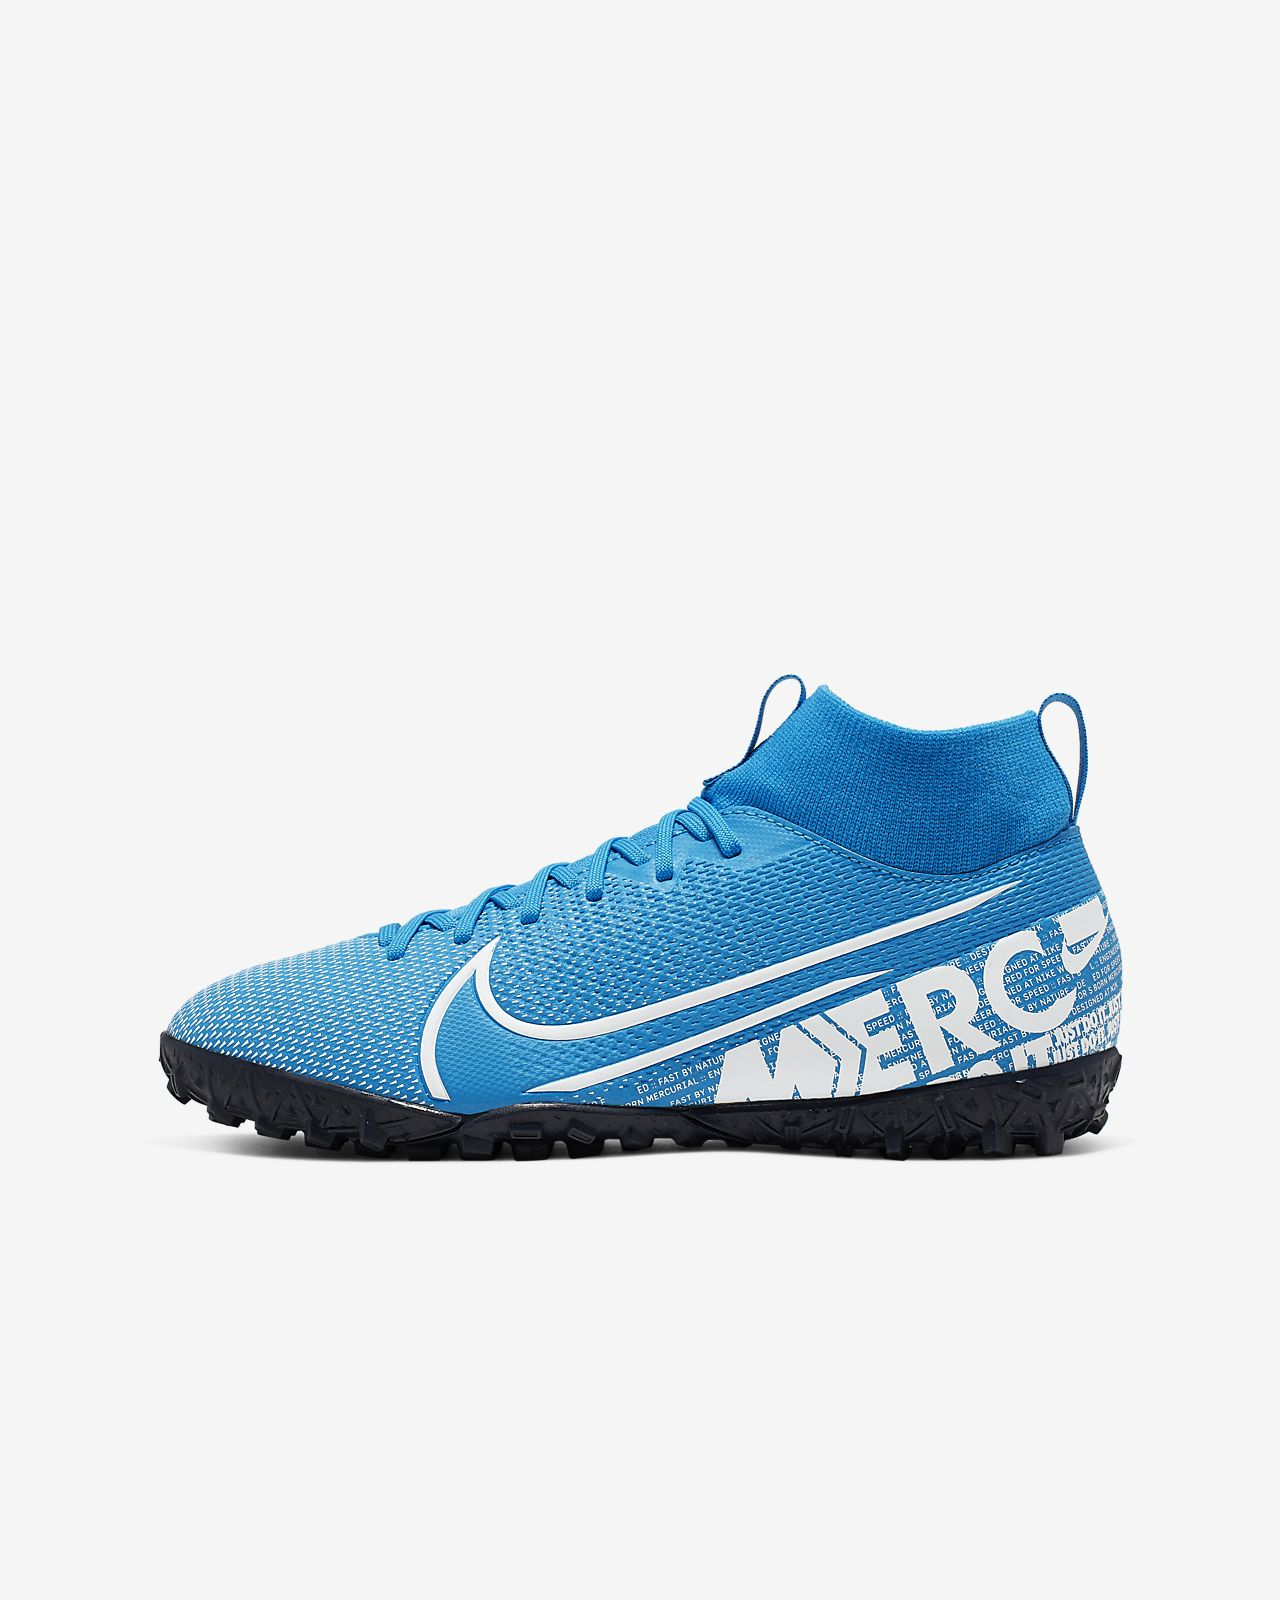 Nike Jr. Mercurial Superfly 7 Academy TF Younger/Older Kids' Artificial-Turf Football Shoe